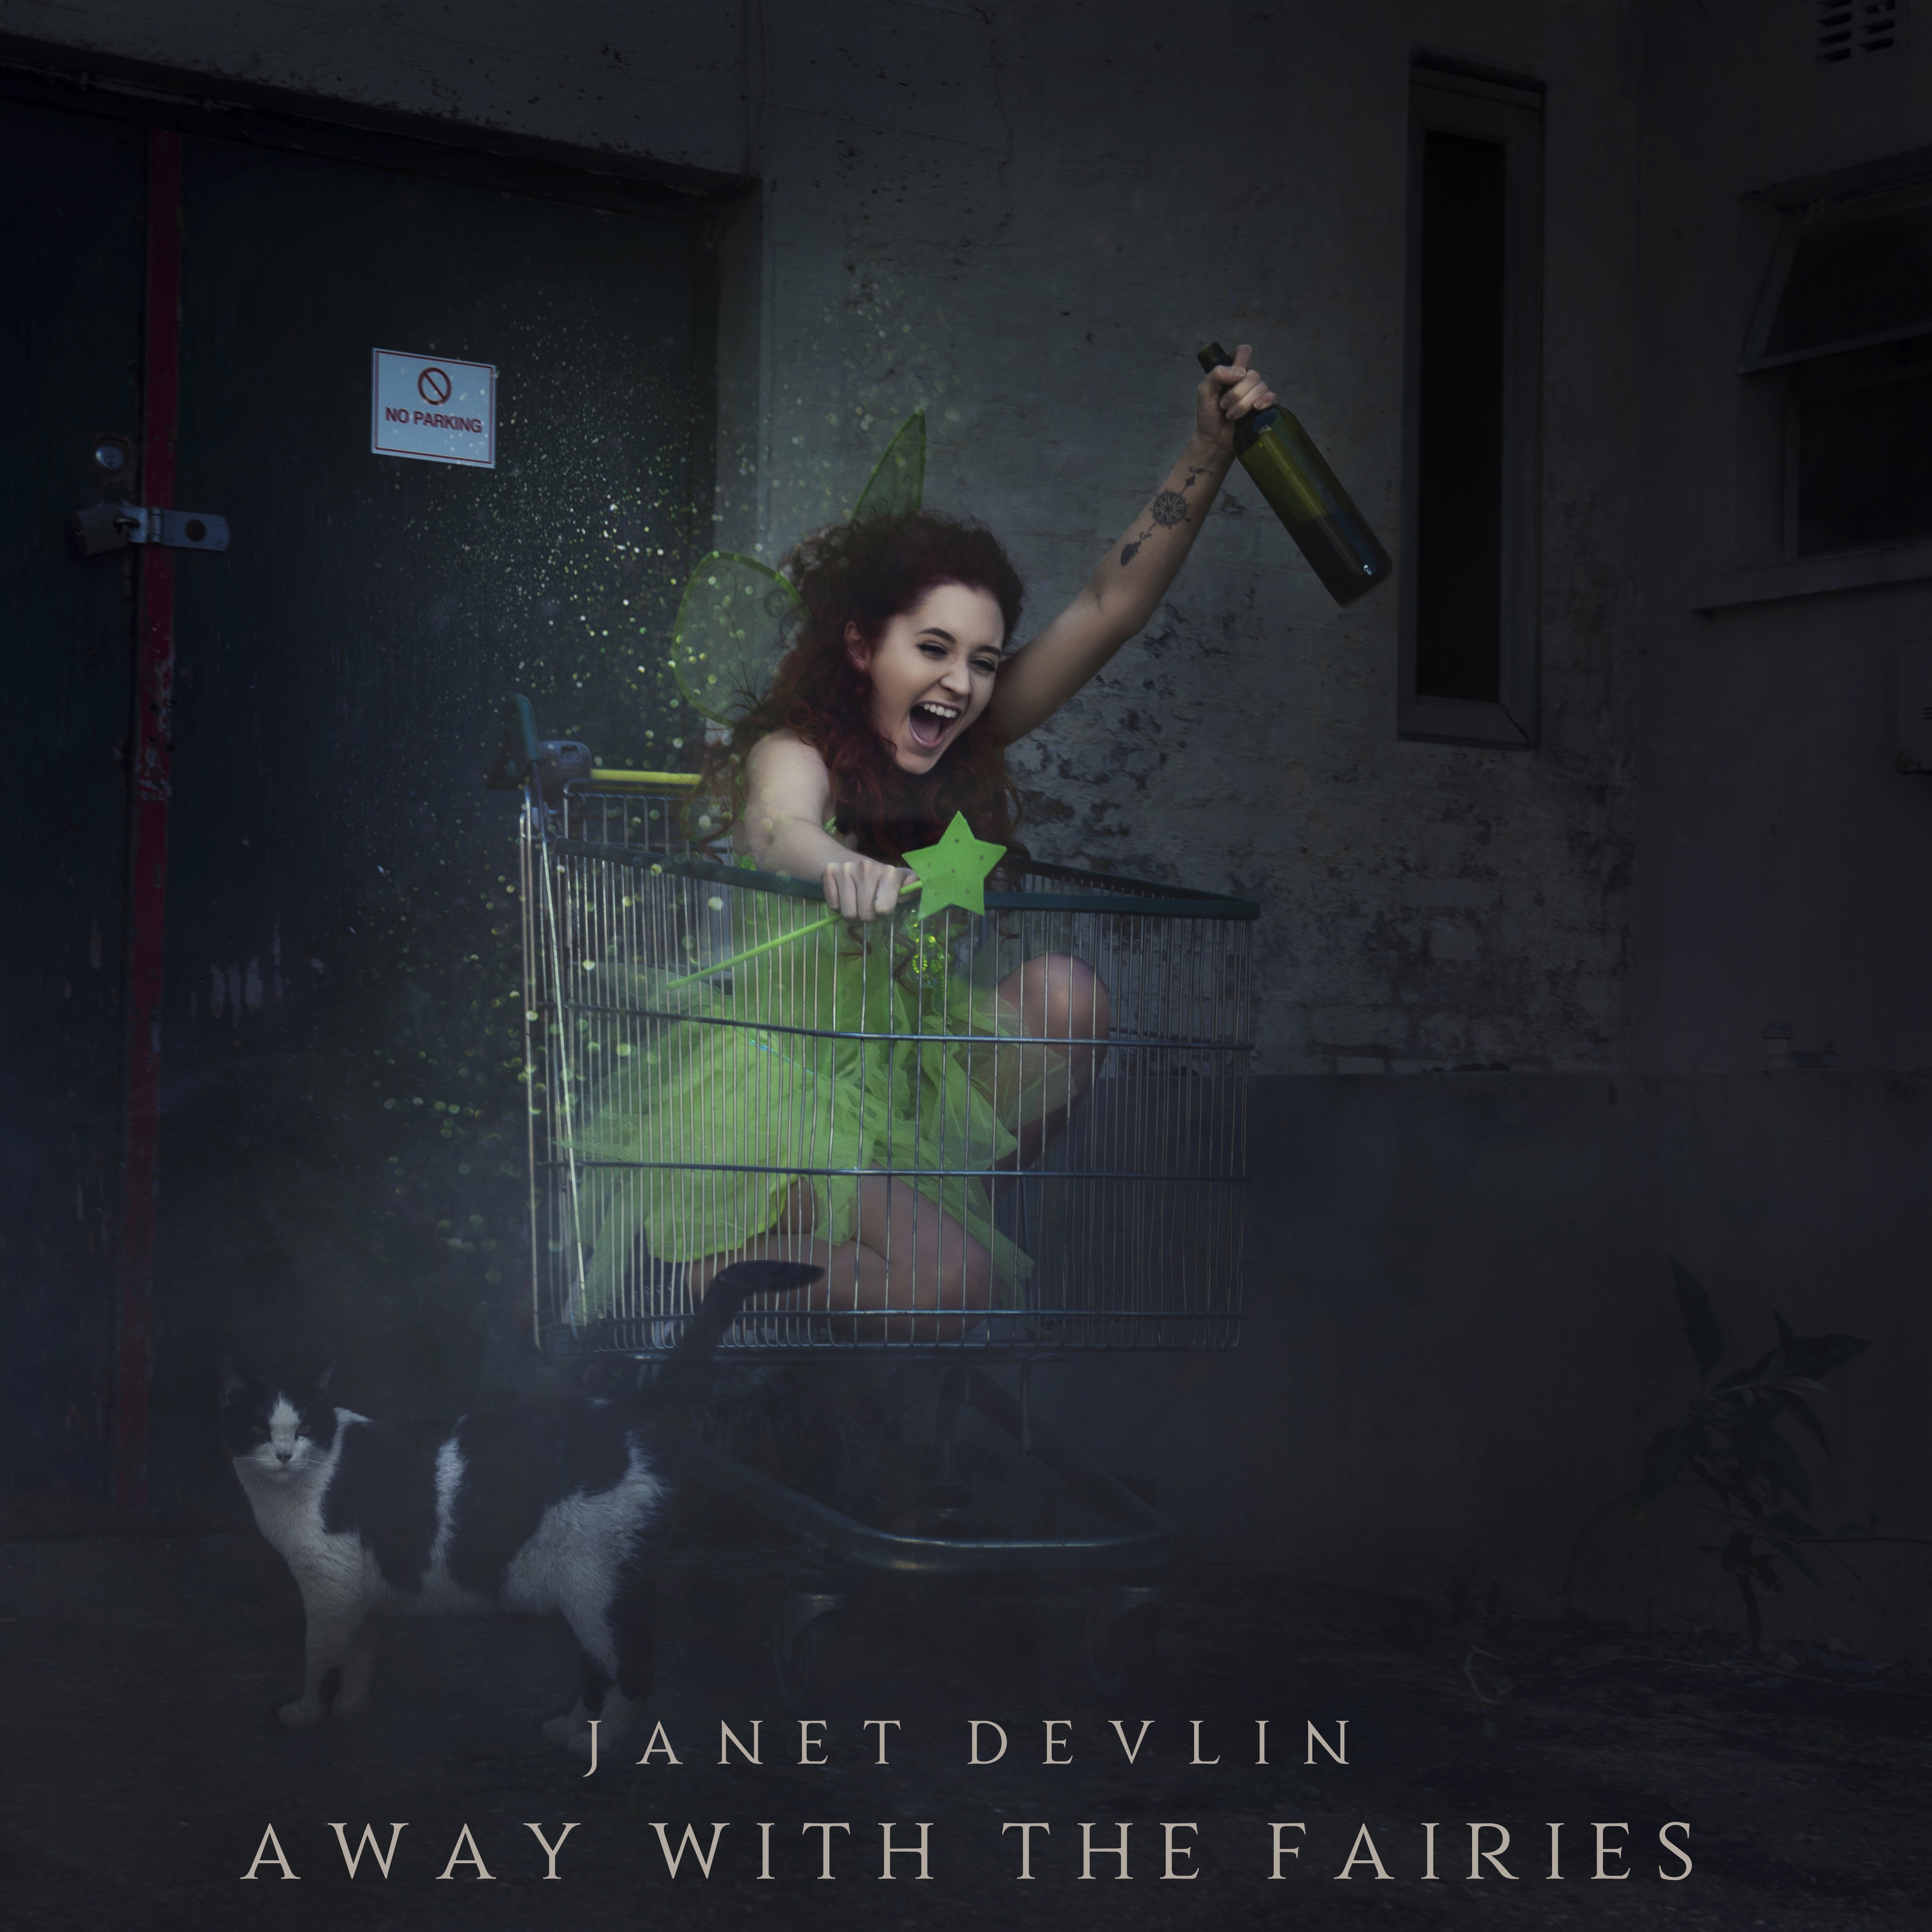 Janet Devlin's new single, 'Away with the Fairies', takes her up, up and away!